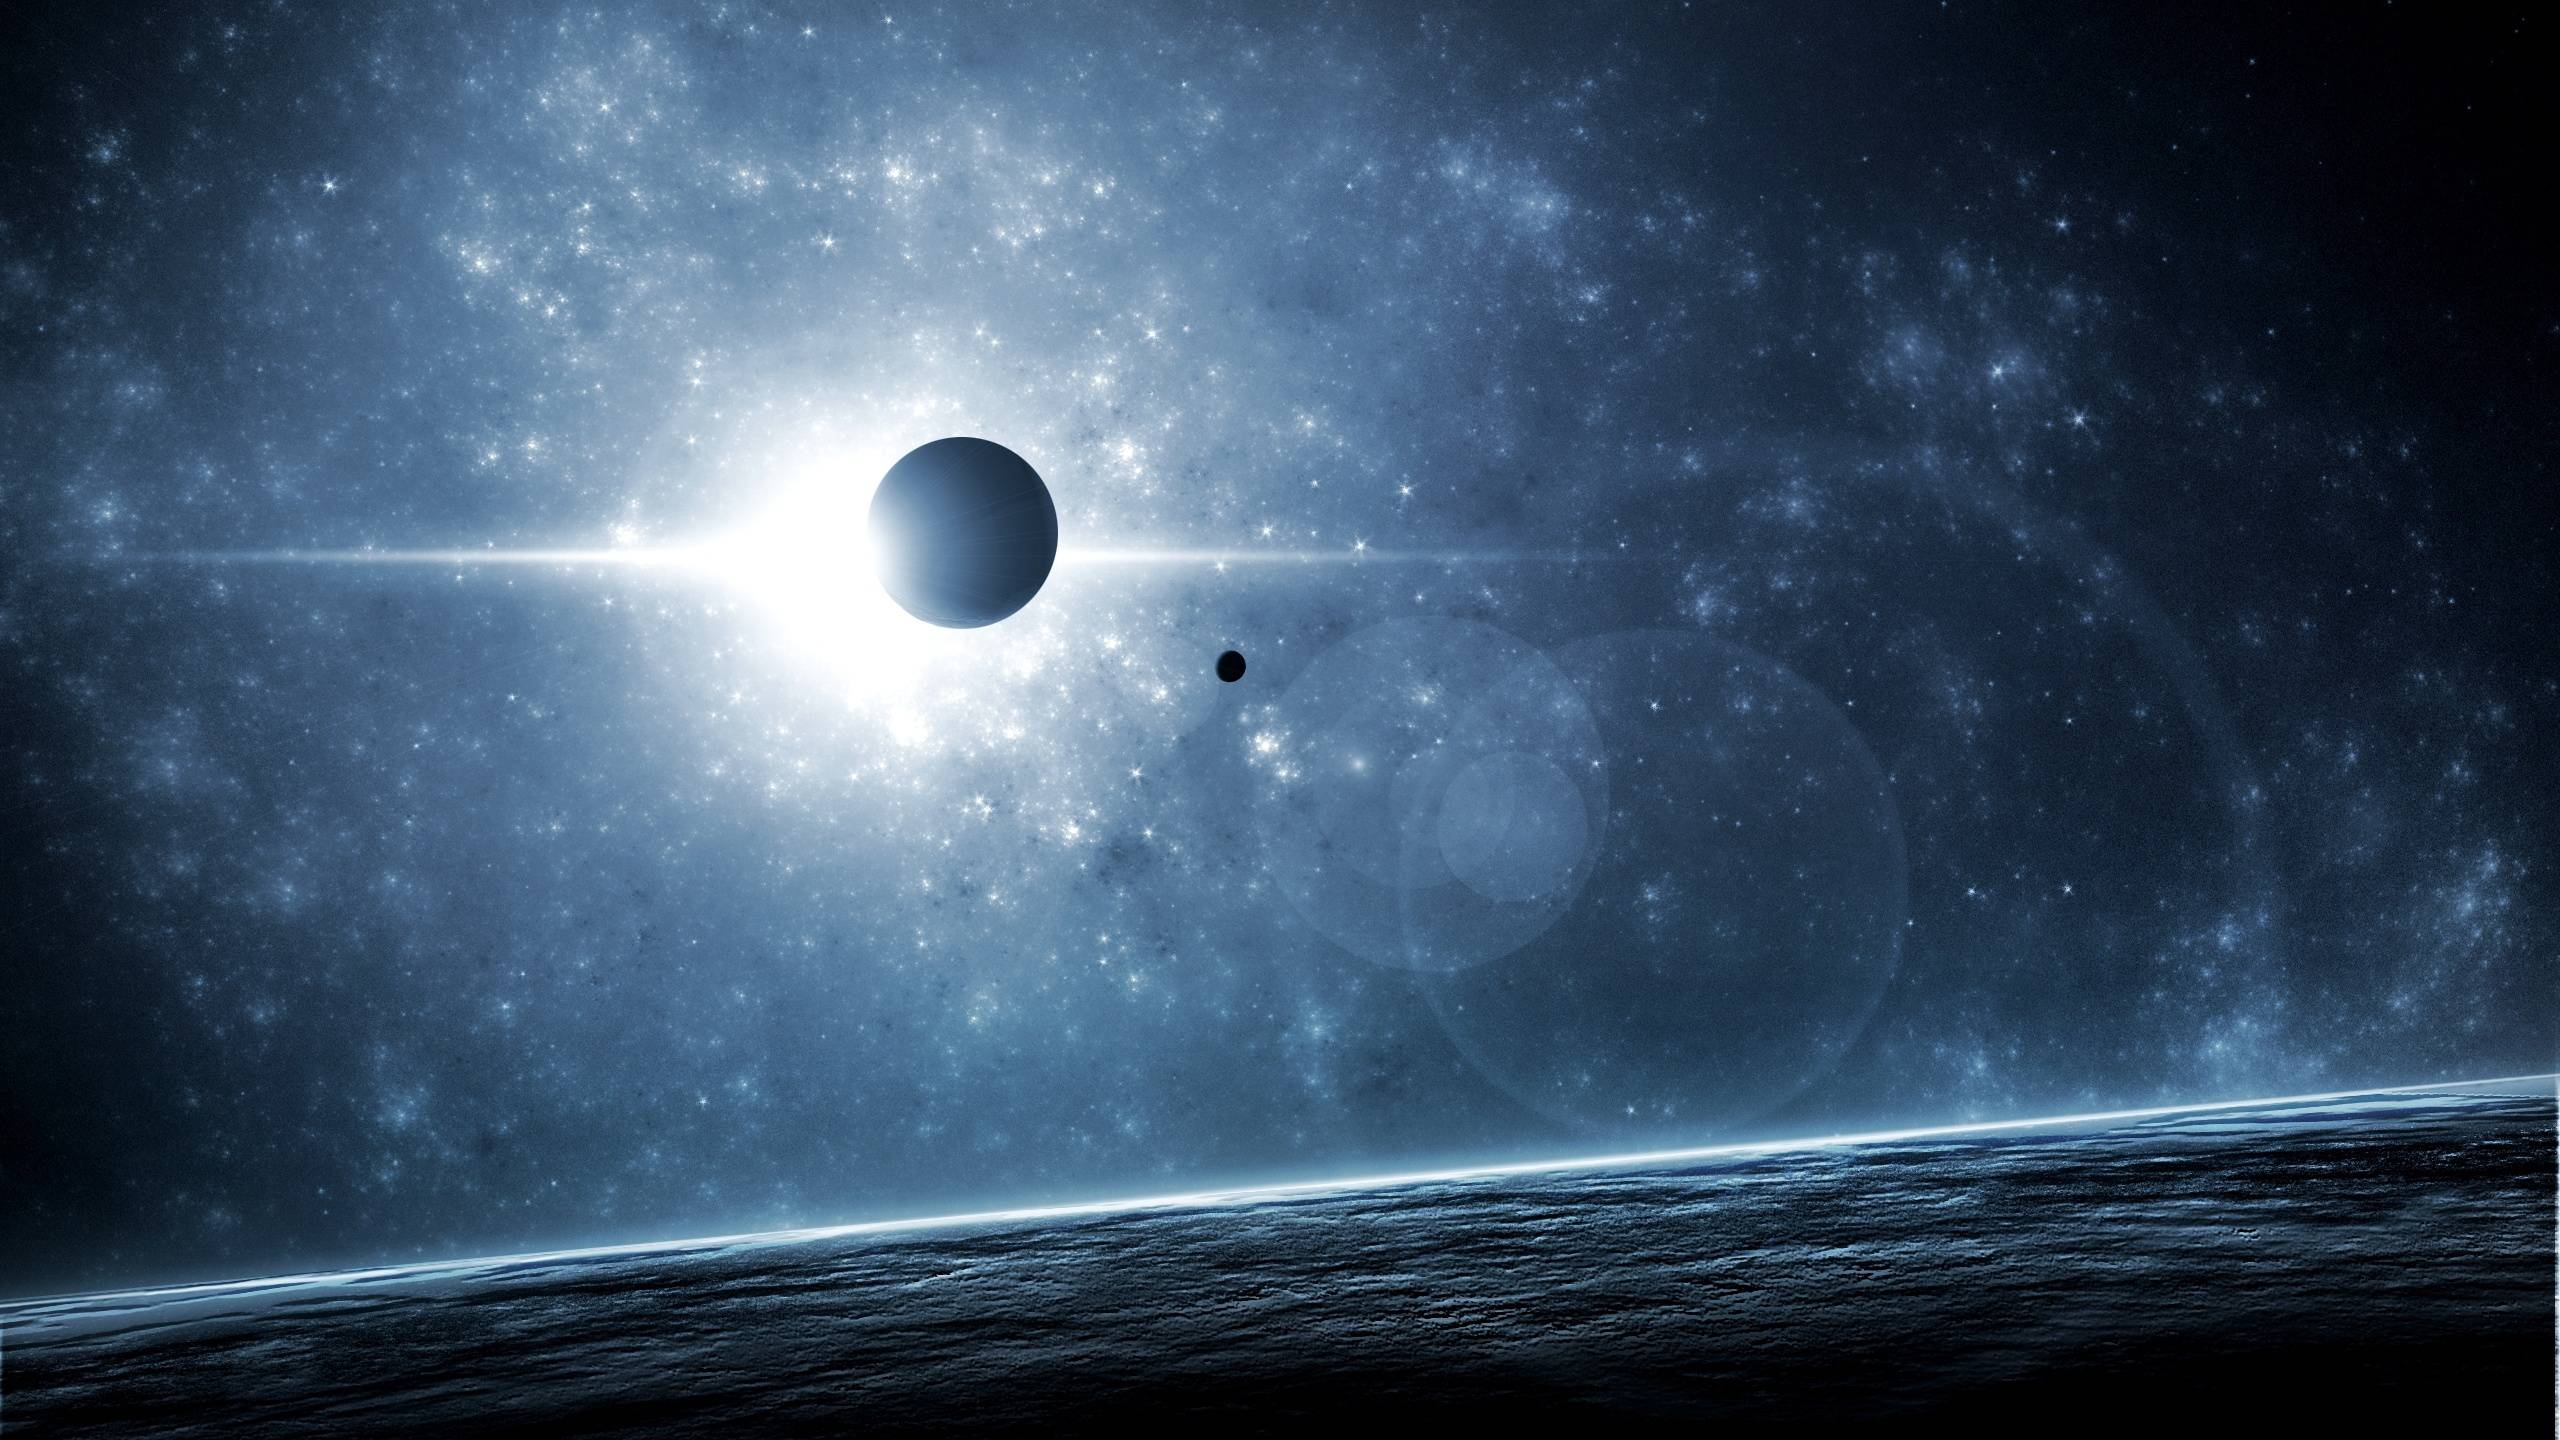 Planet Eclipse Wallpapers Wallpaper Cave